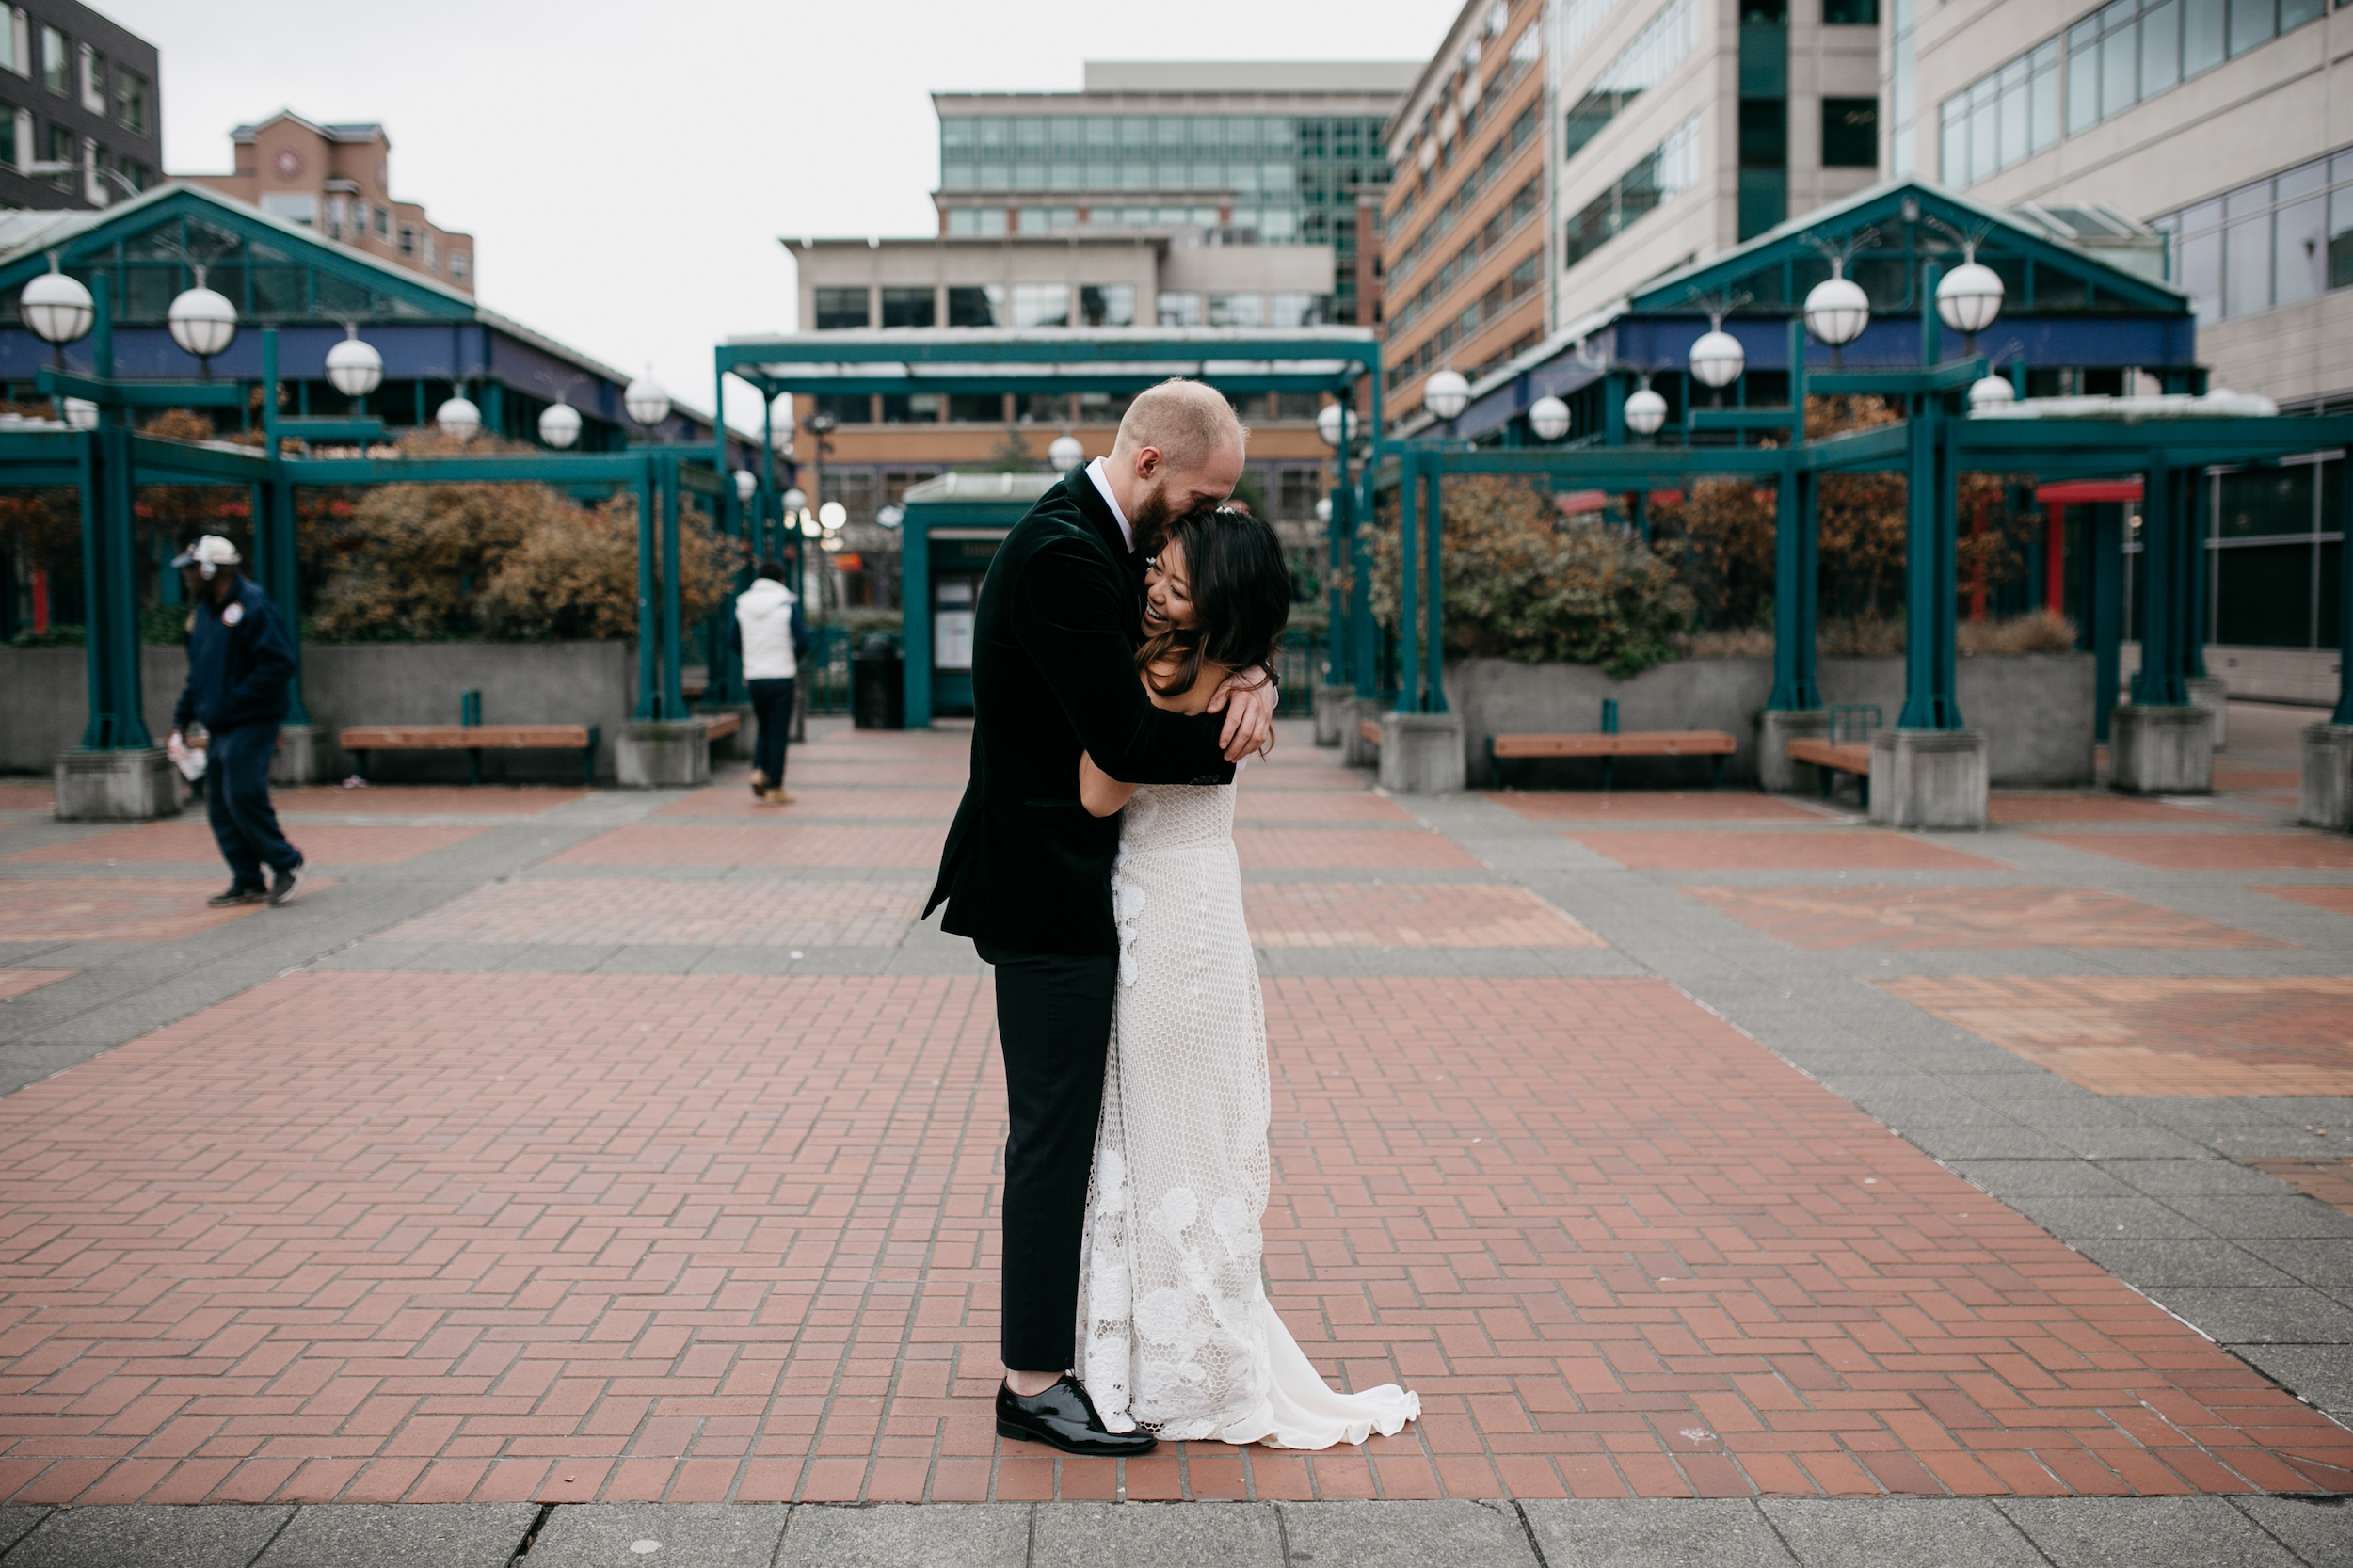 seattle - wedding - photographer127.jpg